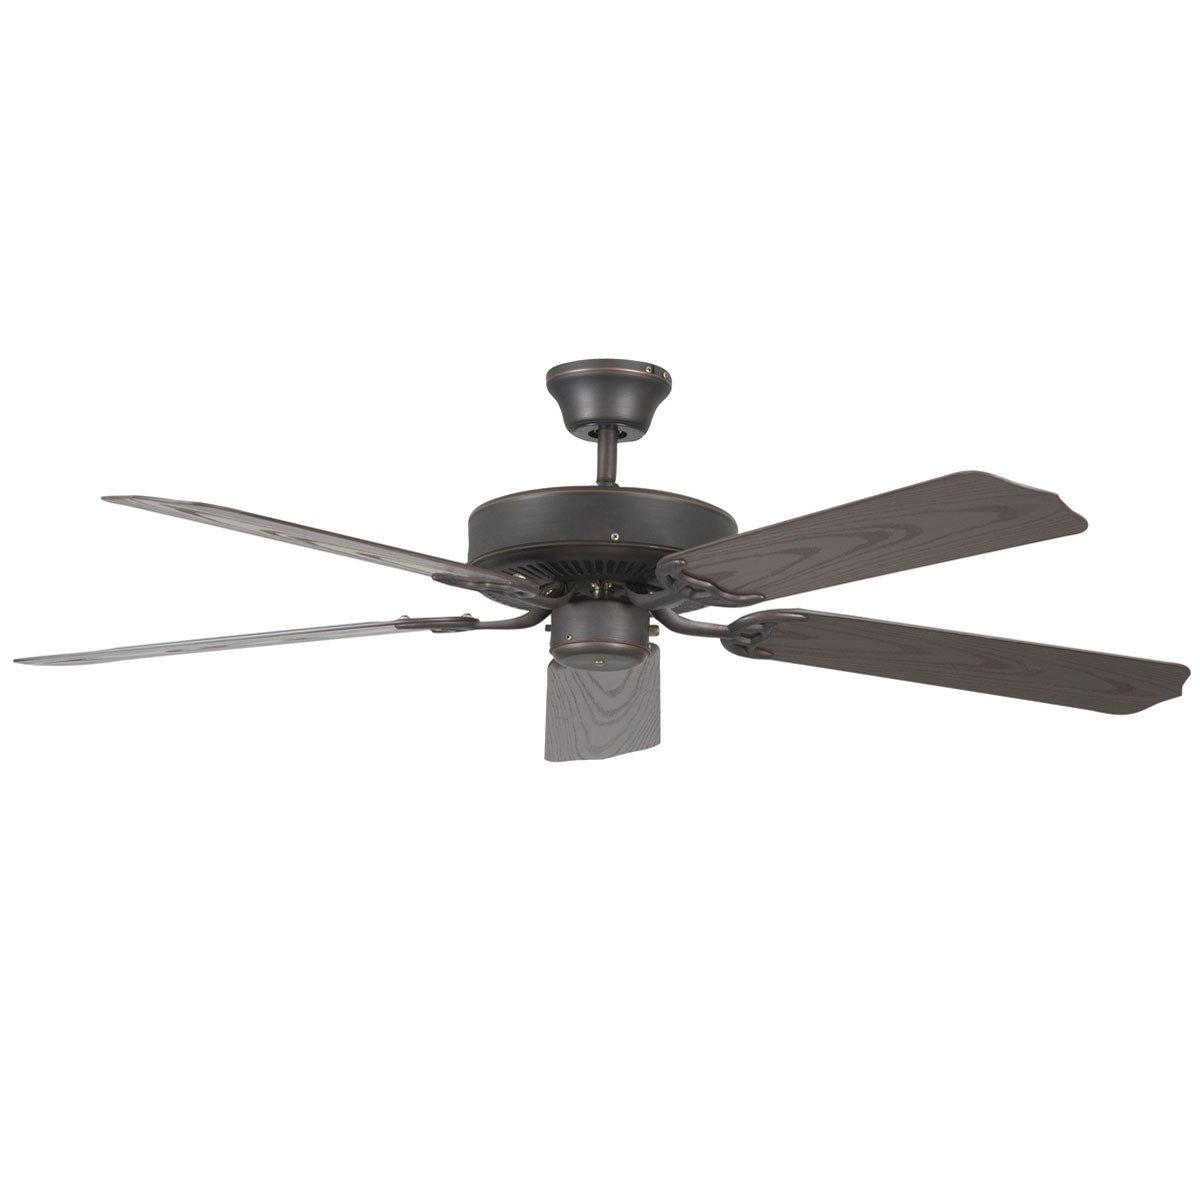 "Concord Fans 52"" Oil Rubbed Bronze Porch Outdoor Ceiling Fan"